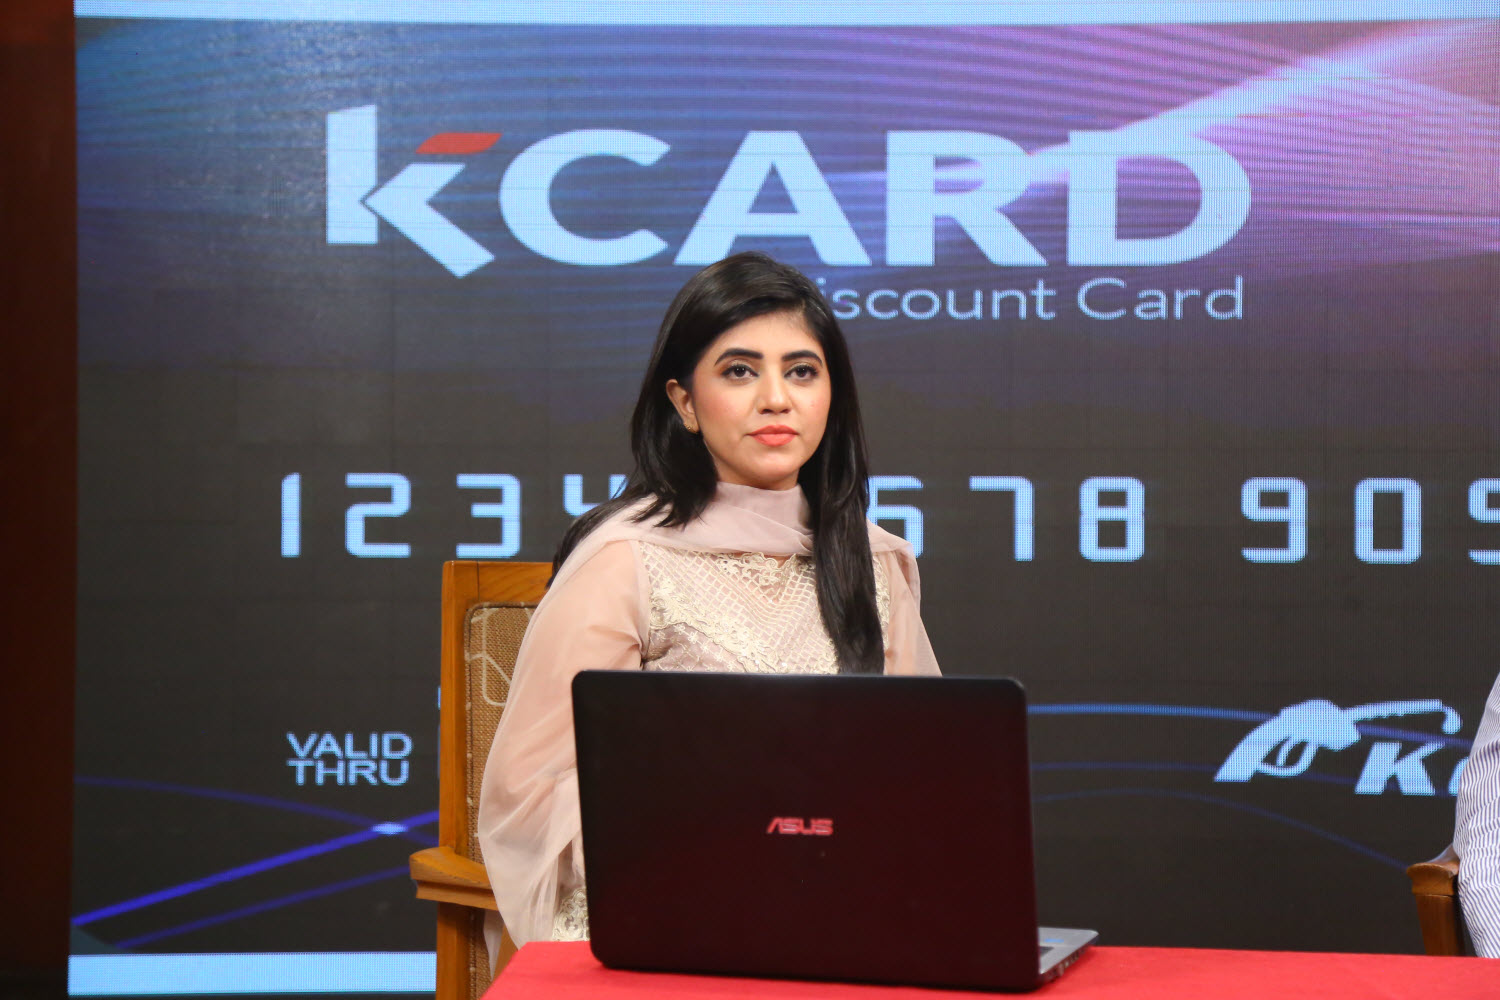 K Card Inauguration Ceremony